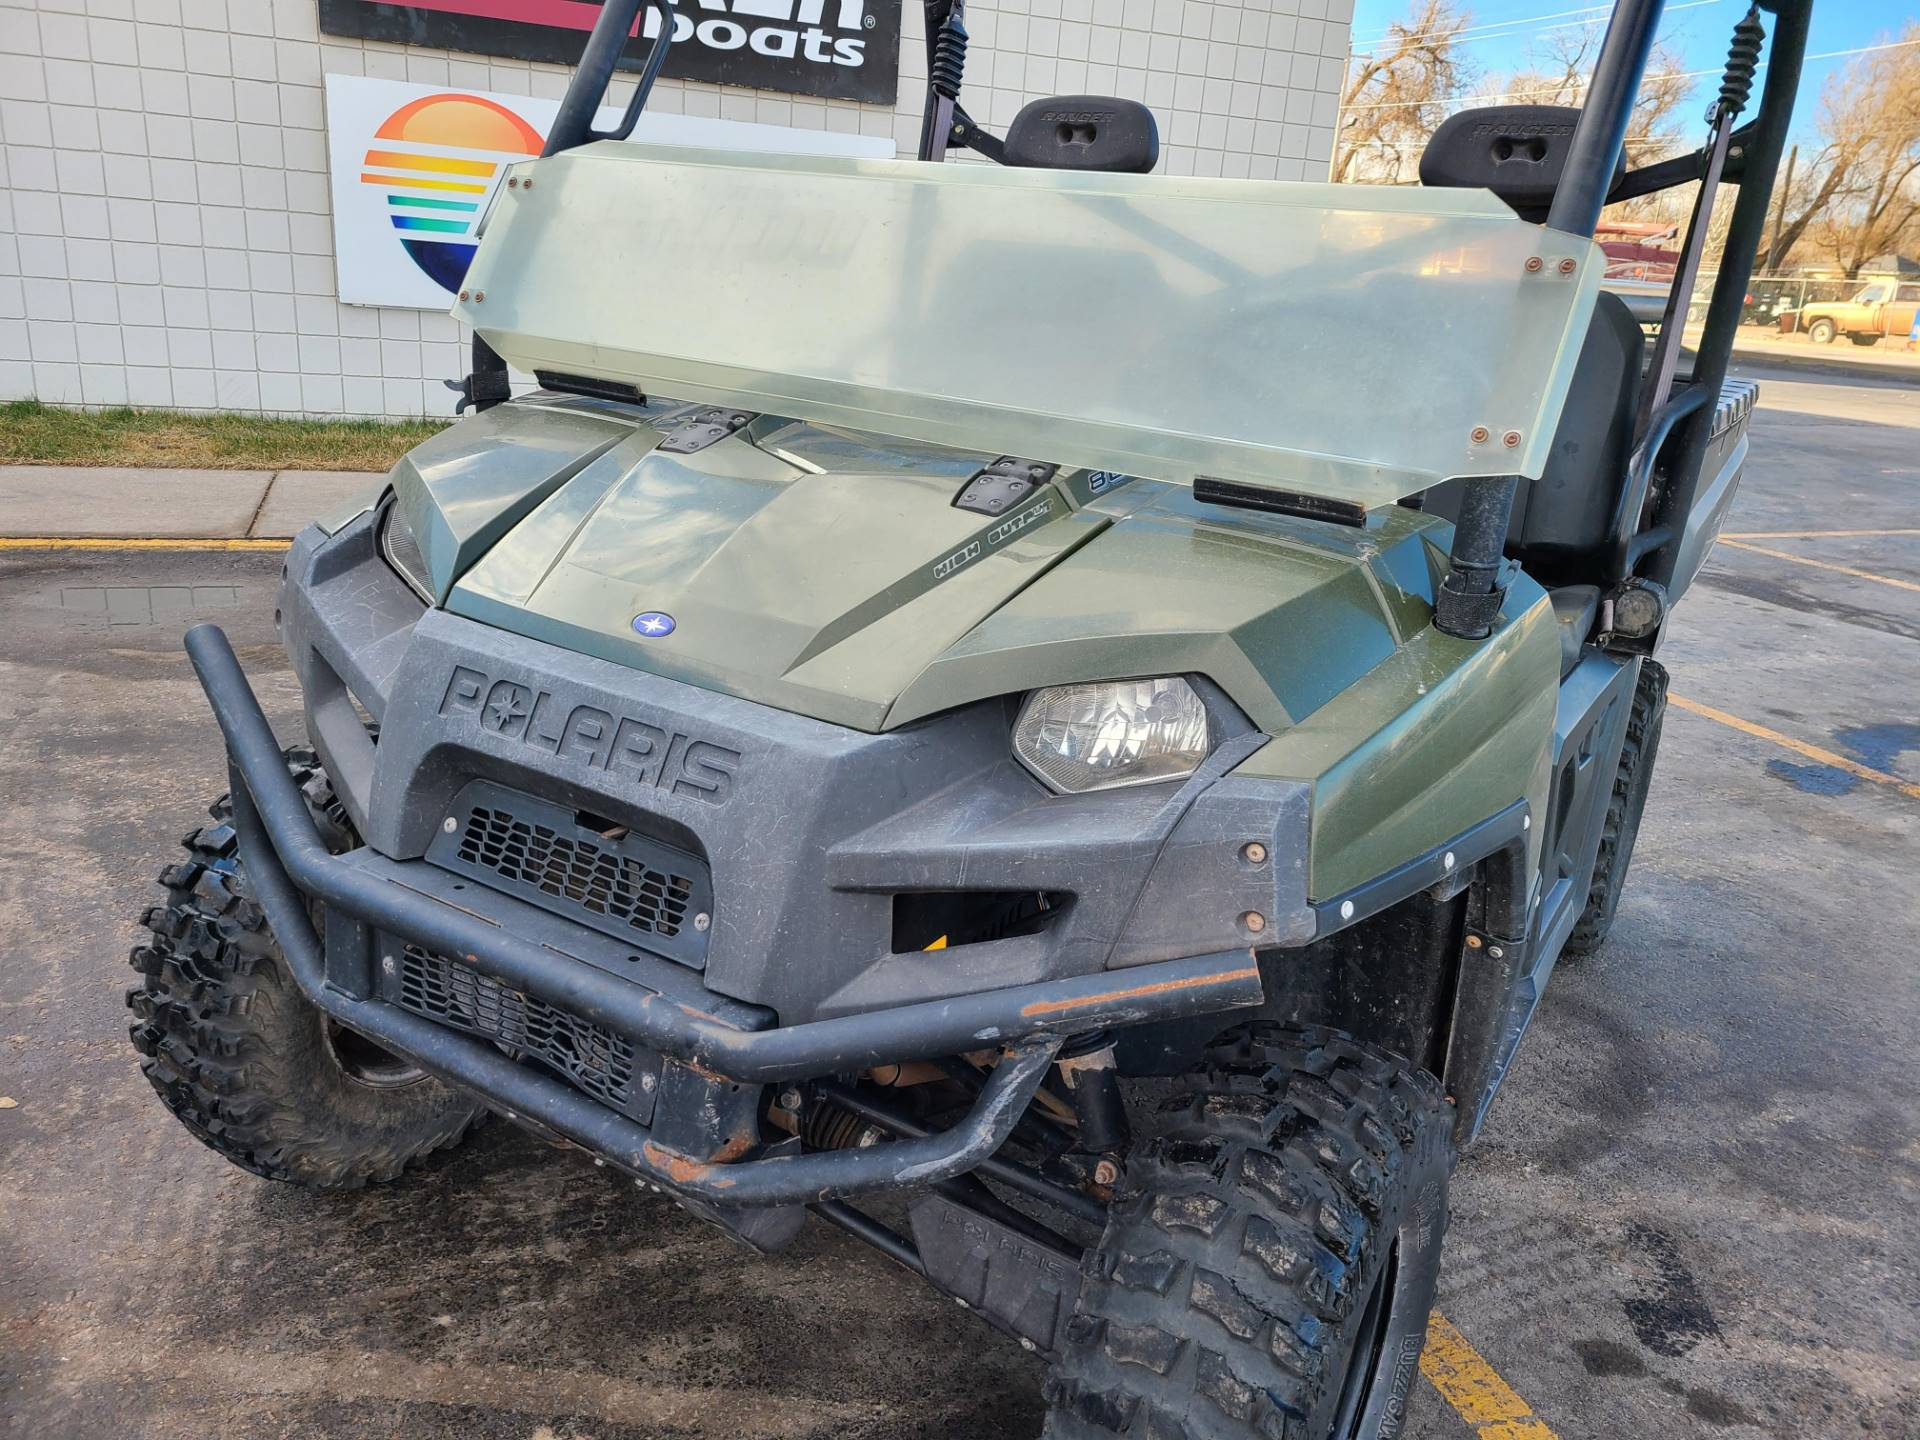 2012 Polaris Ranger XP® 800 in Rapid City, South Dakota - Photo 2